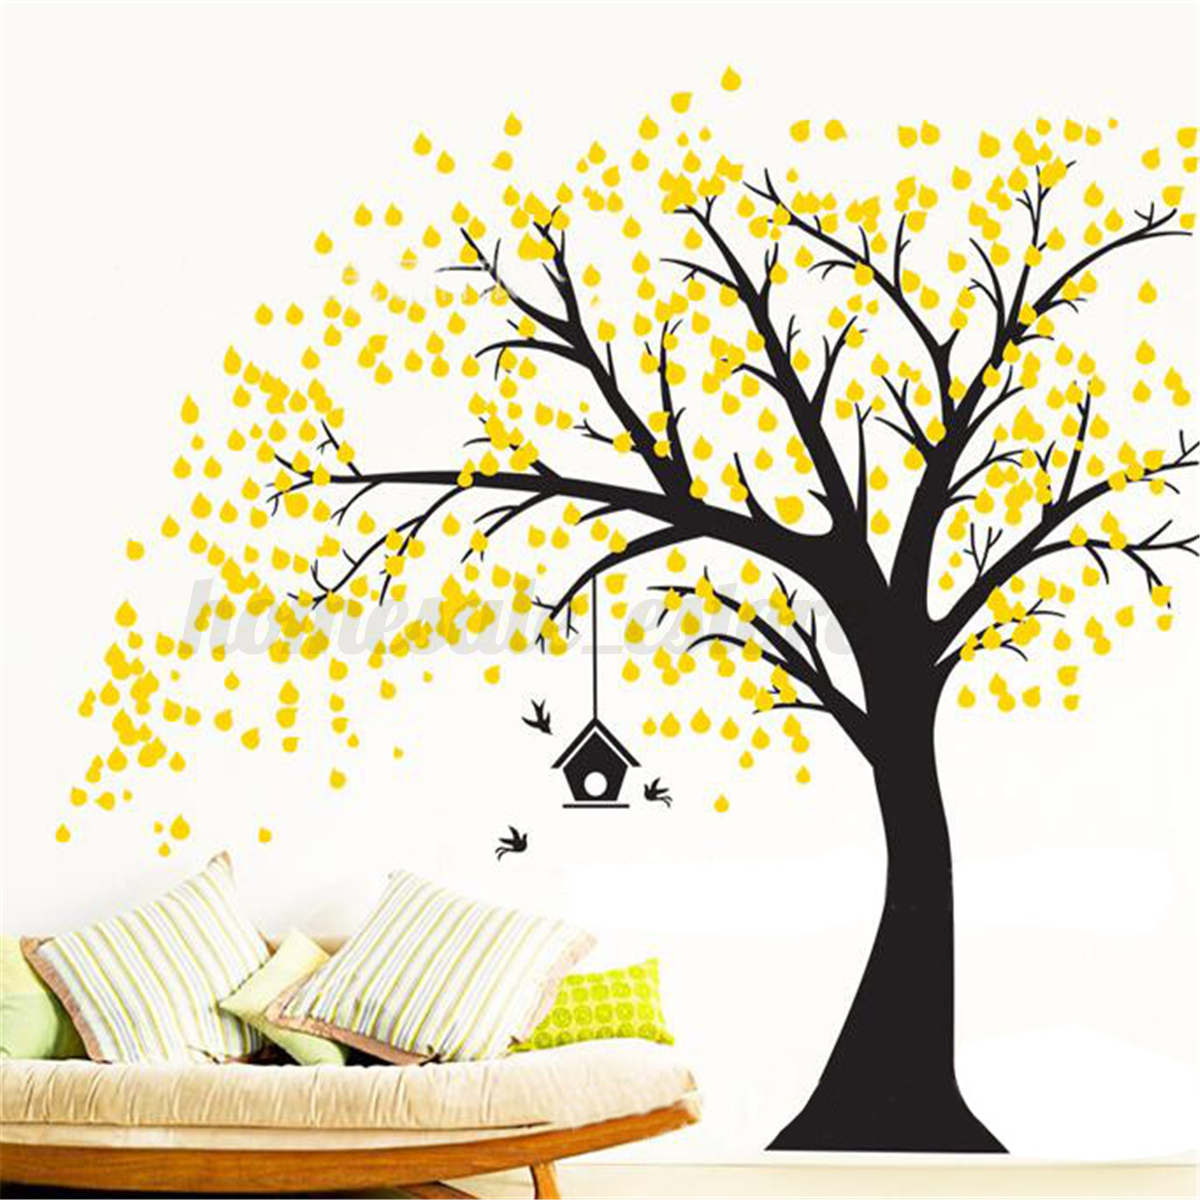 210cmX180cm DIY Tree Wall Paper Art Wall Sticker Home Bedroom Bbay ...